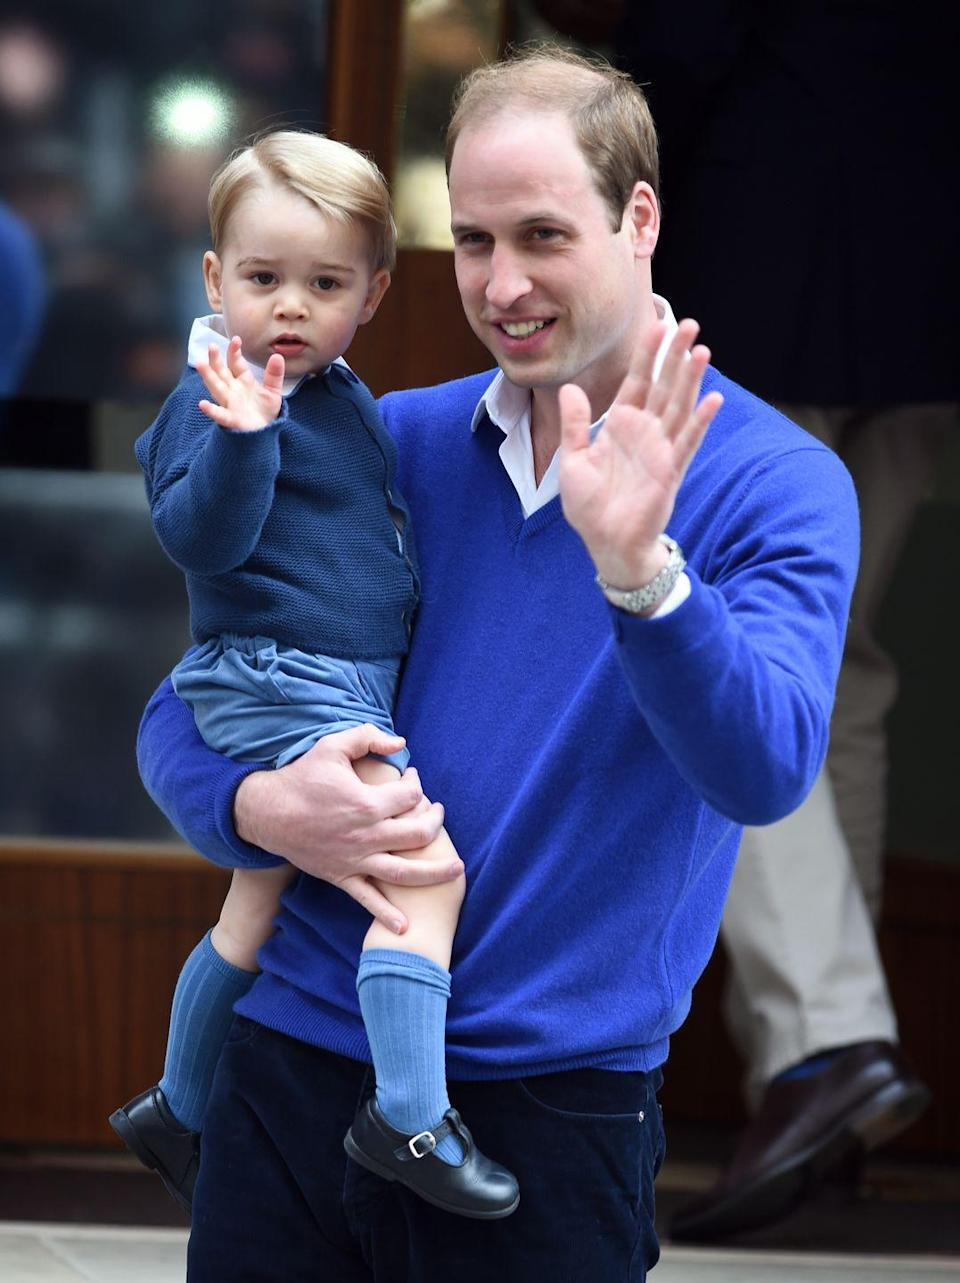 <p>George and William wave to the press at the Lindo Wing at St. Mary's Hospital shortly after the birth of Princess Charlotte in May 2015. George is currently third-in-line to the throne, after dad William (second) and grandpa Charles (first).</p>